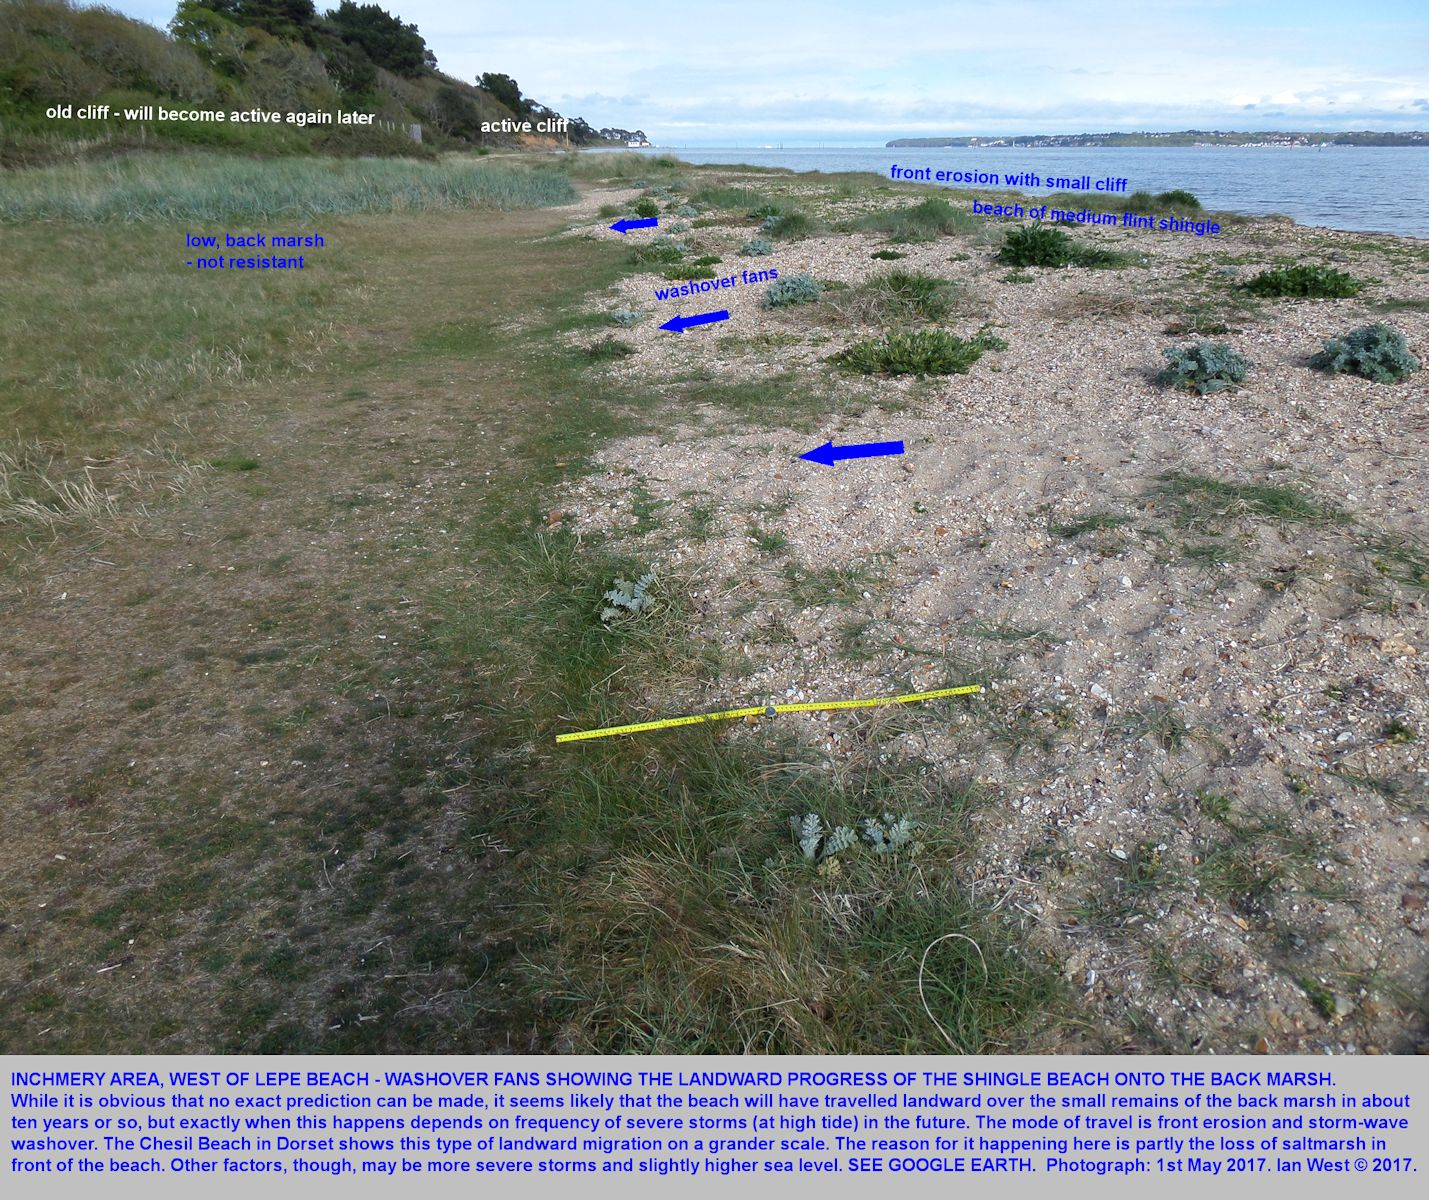 Small washover fans developed as the shingle beach retreats landwards over a small marsh at Inchmery House, west of Lepe Beach, Hampshire, 1st May 2017